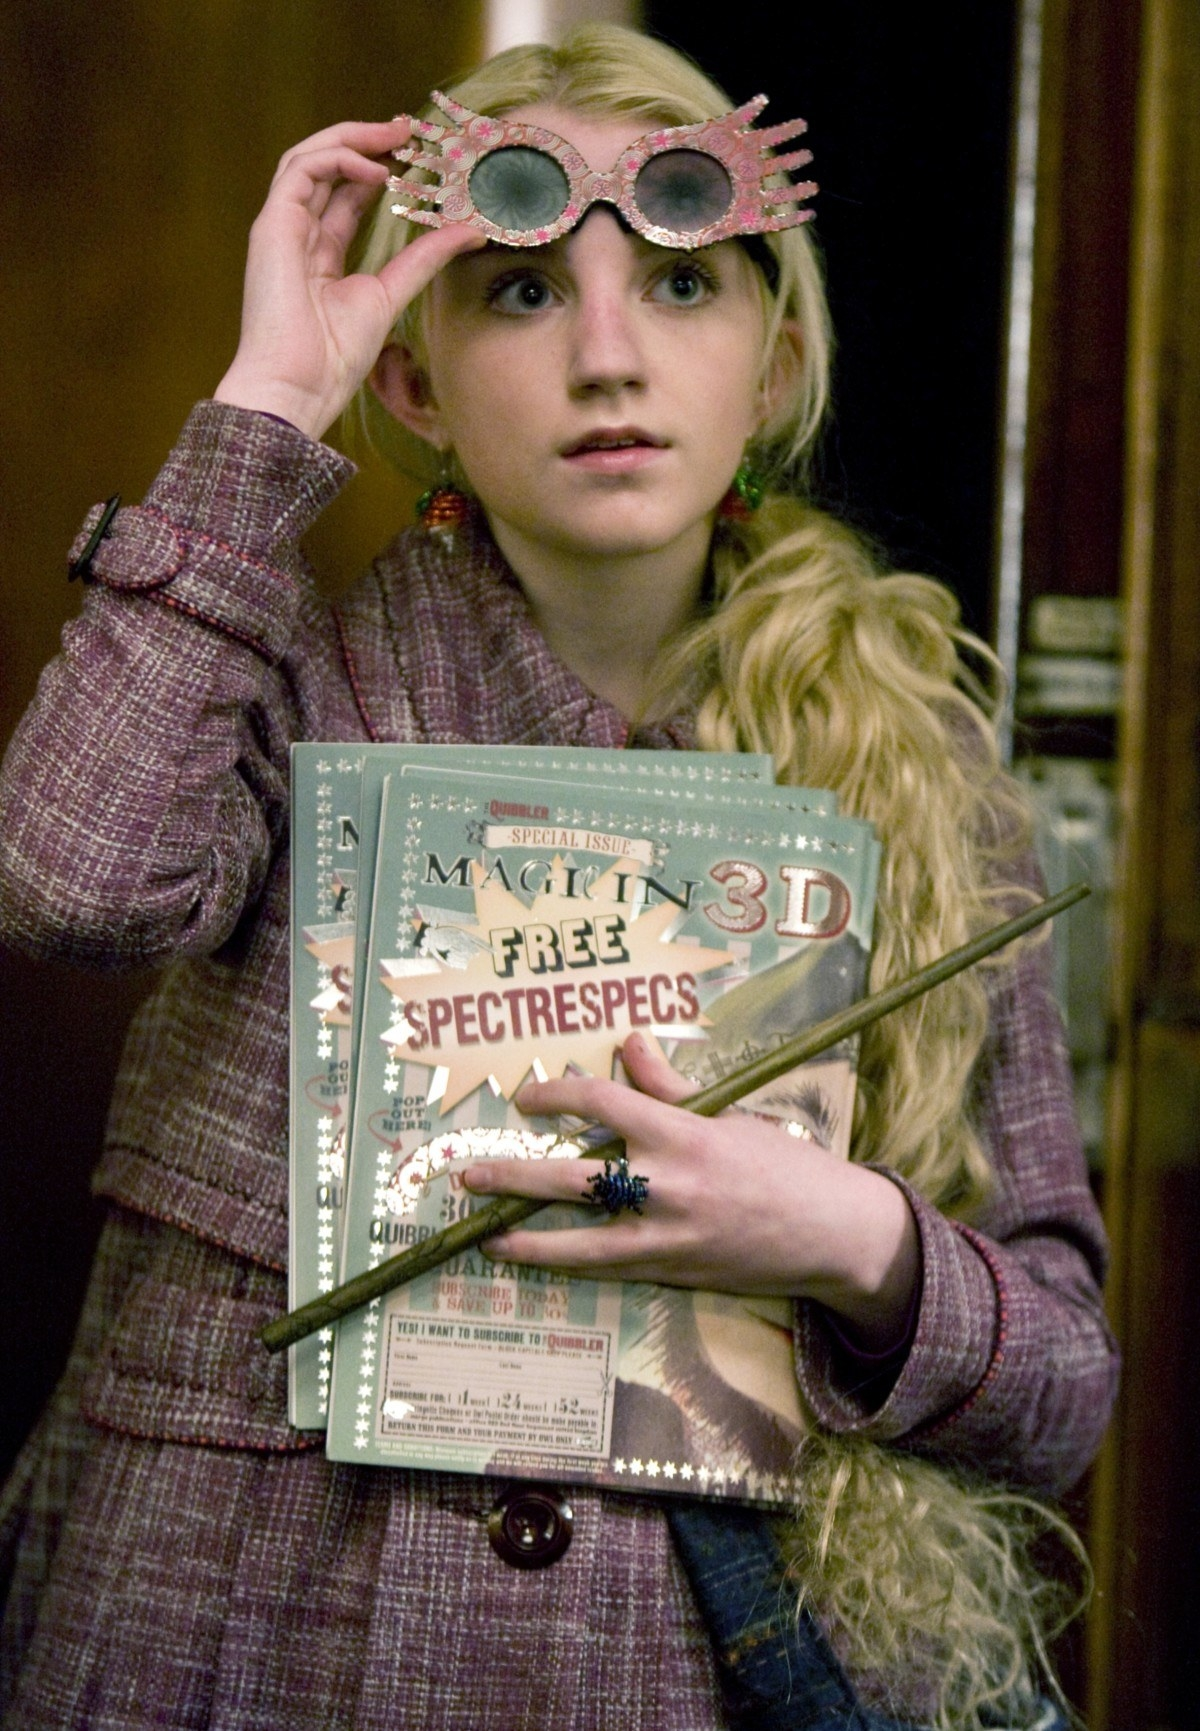 Unlike Hermione's logical personality, Luna's wisdom came from her creativity and intuition. She thought outside of the box and didn't feel the need to conform to everyone's idea of normal.